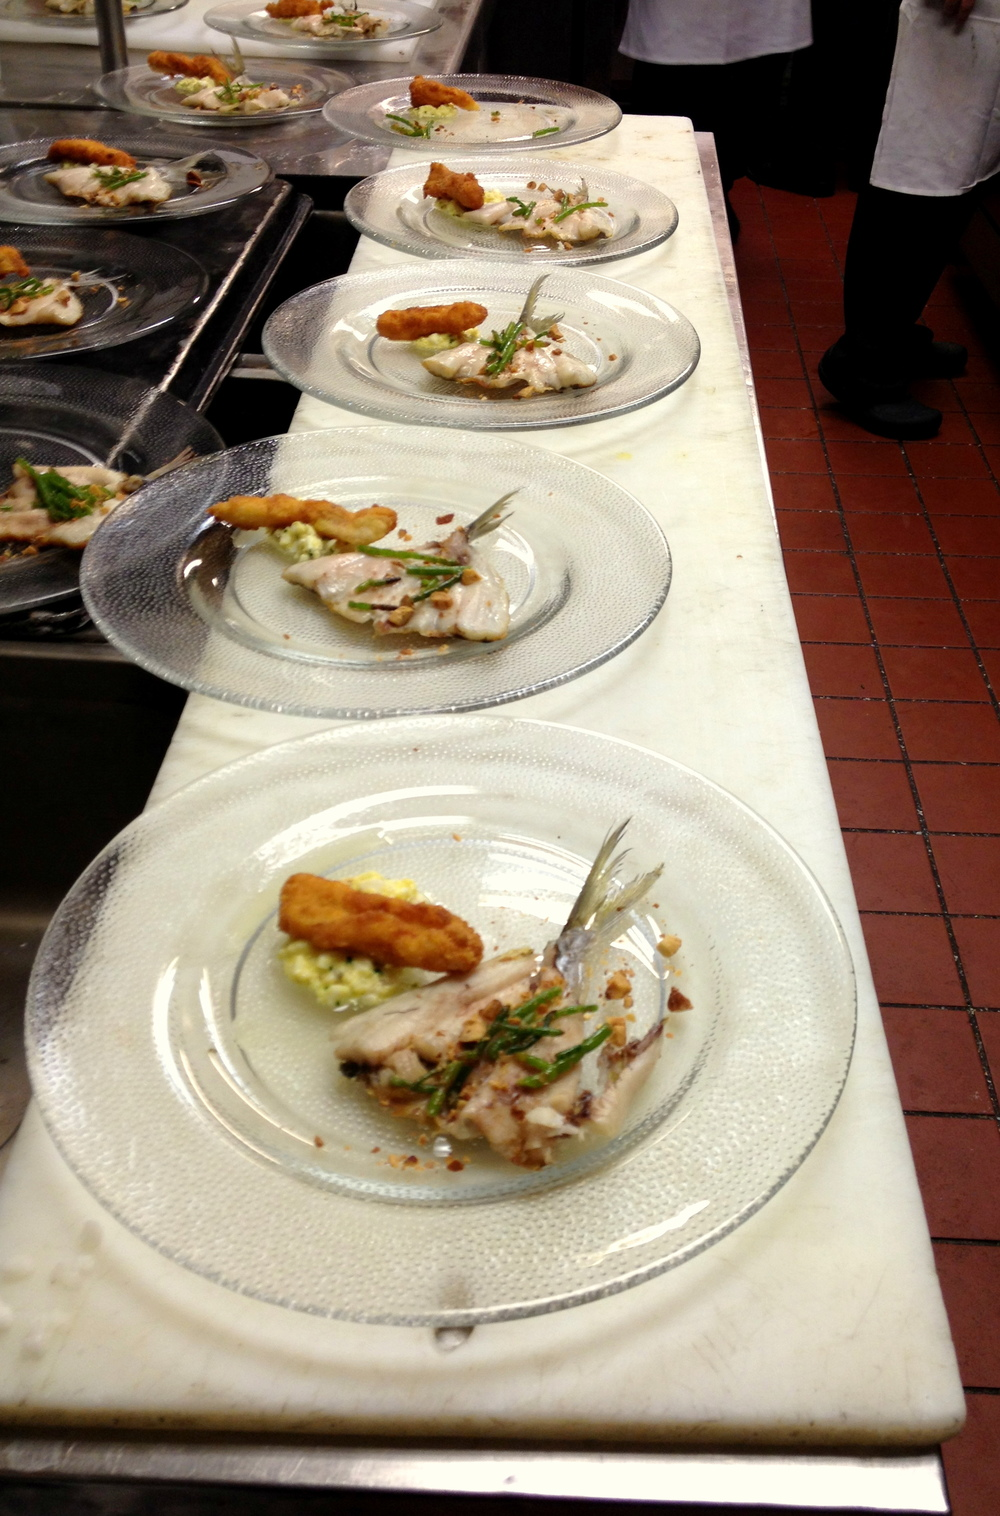 Plating butterfish almandine